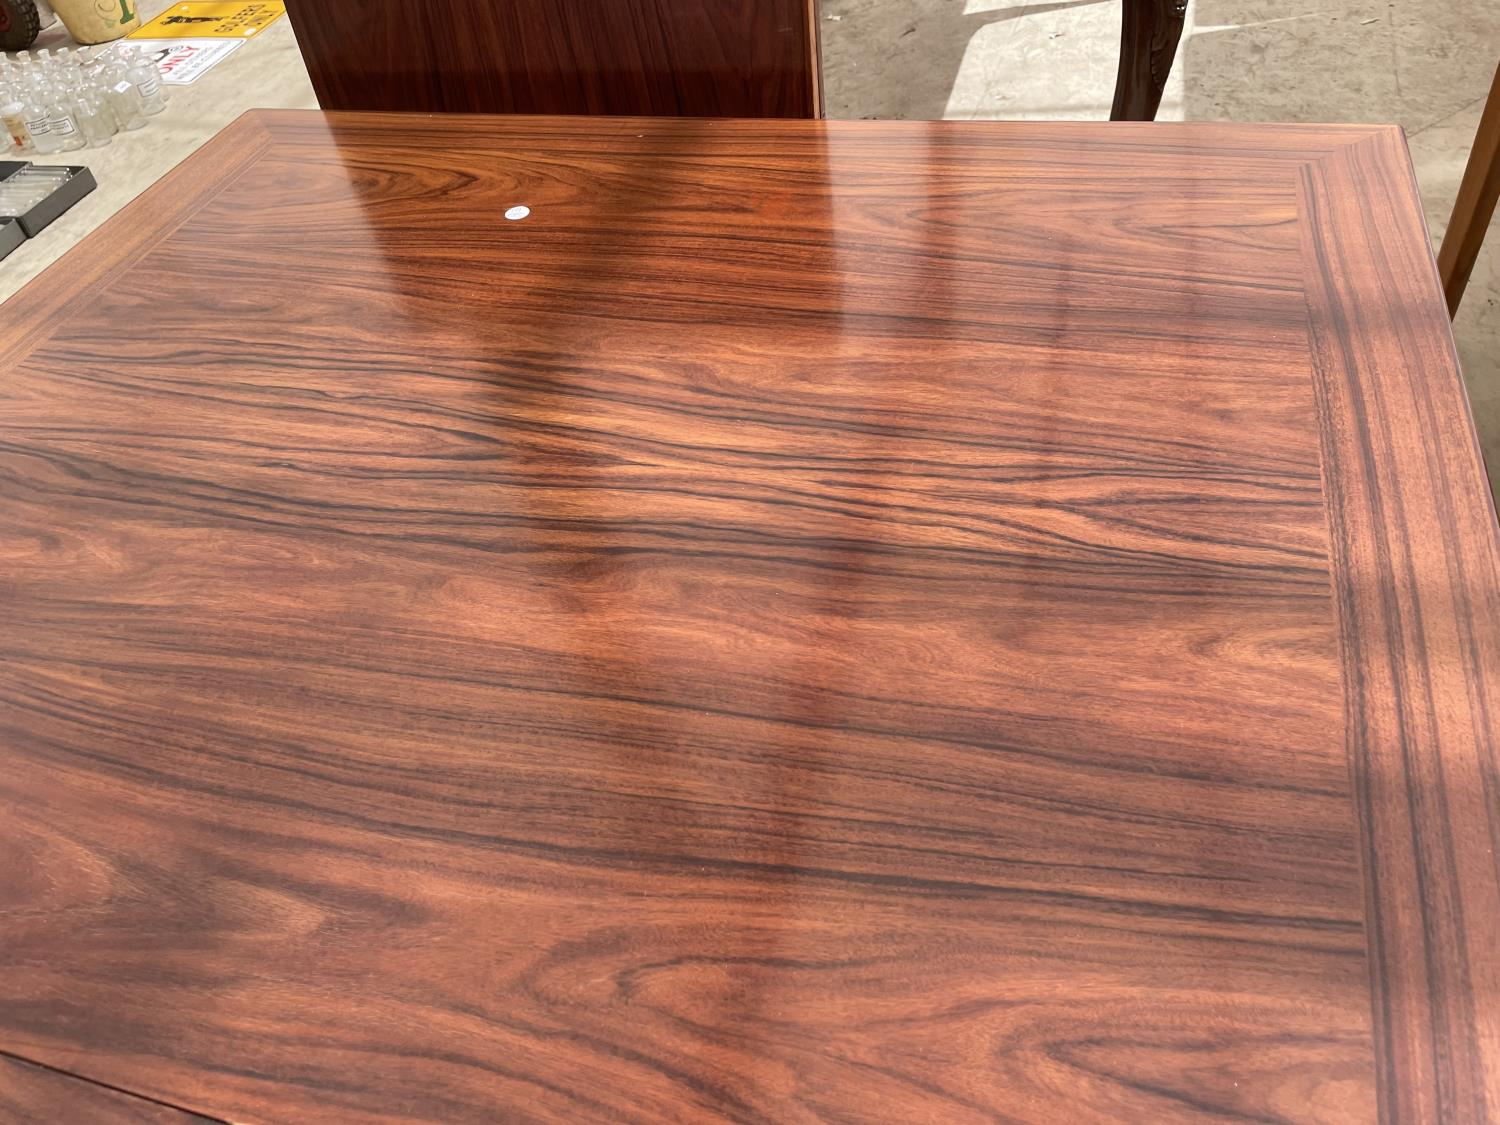 A RETRO EXTENDING HARDWOOD DINING TABLE WITH TWO EXTRA LEAVES - Image 3 of 6